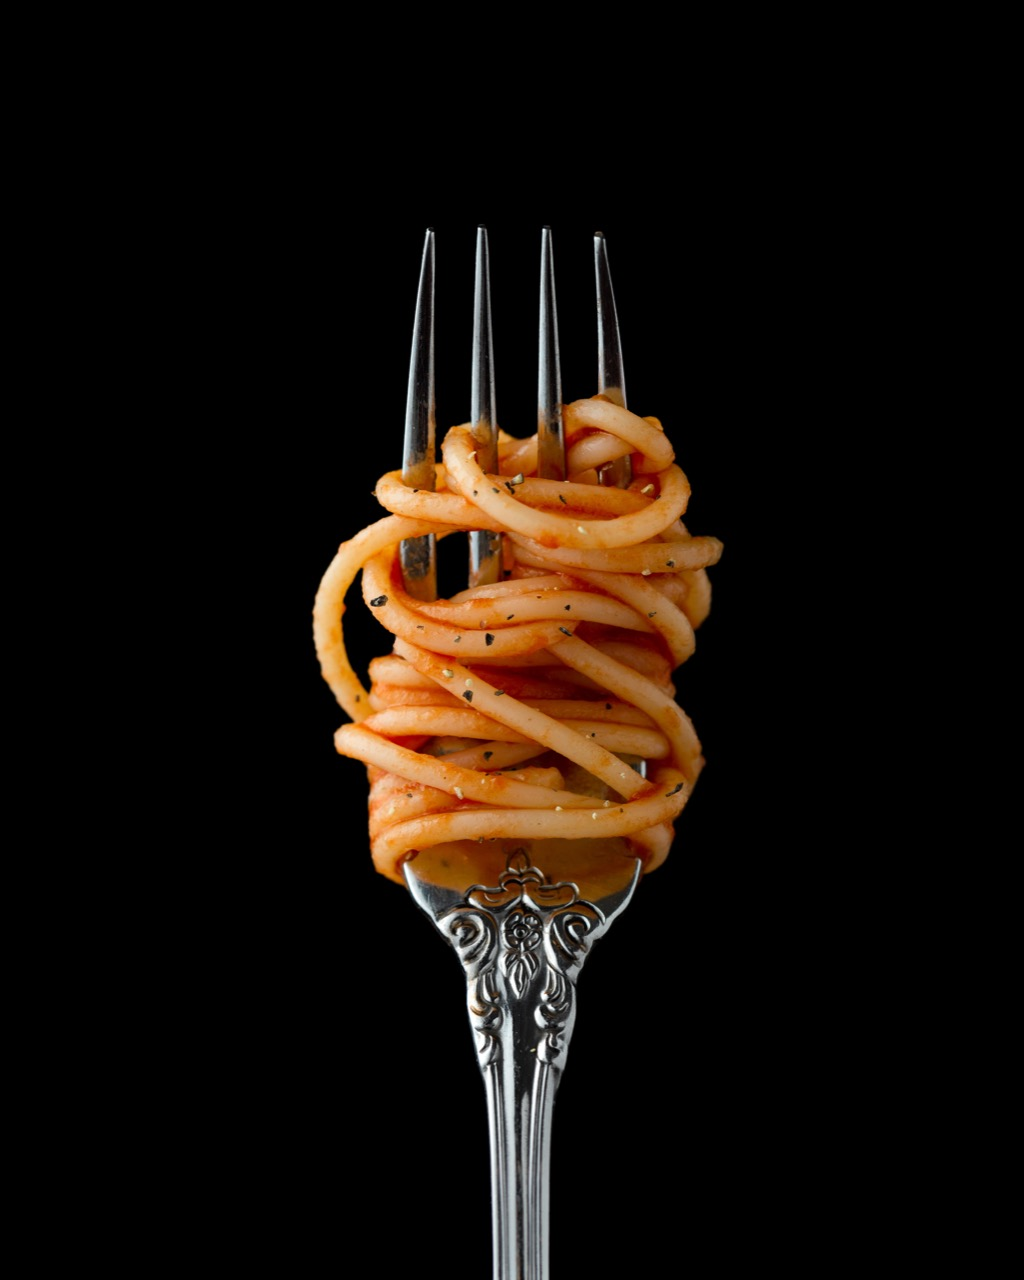 Photo of pasta on a fork